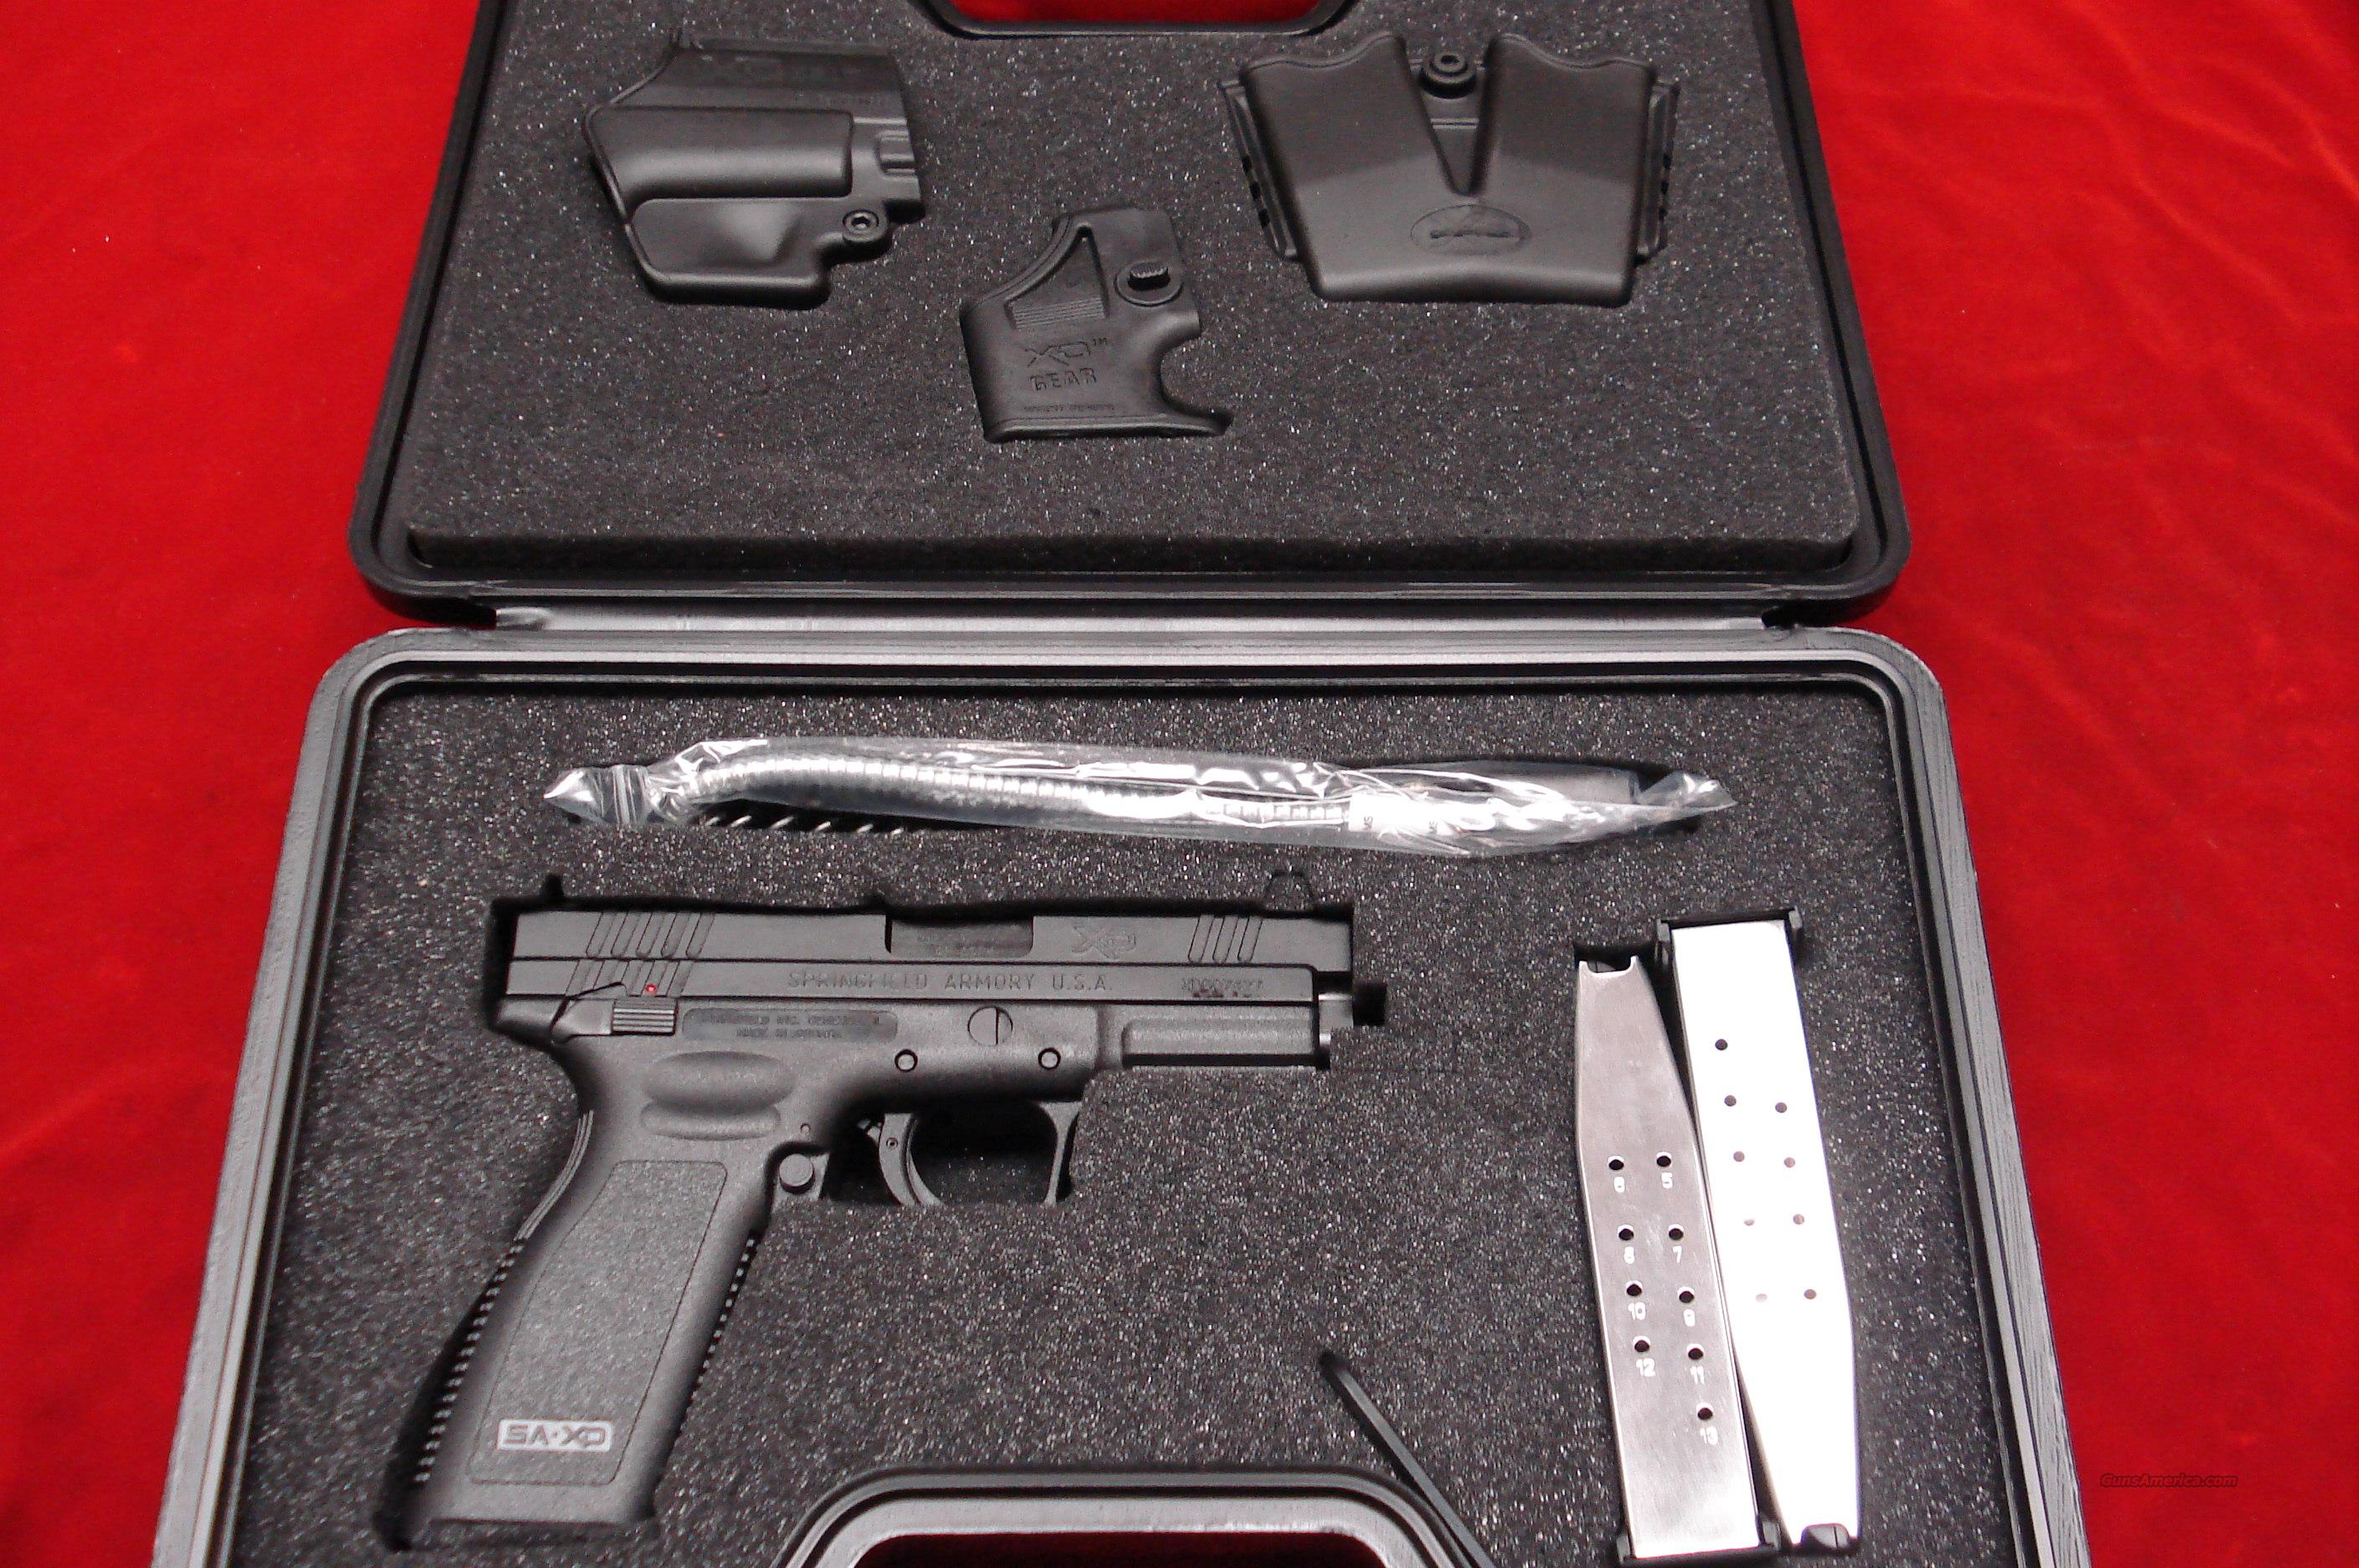 SPRINGFIELD ARMORY XD 45ACP HIGH CAP PACKAGE (THUMB SAFETY) NEW IN THE BOX   Guns > Pistols > Springfield Armory Pistols > XD (eXtreme Duty)